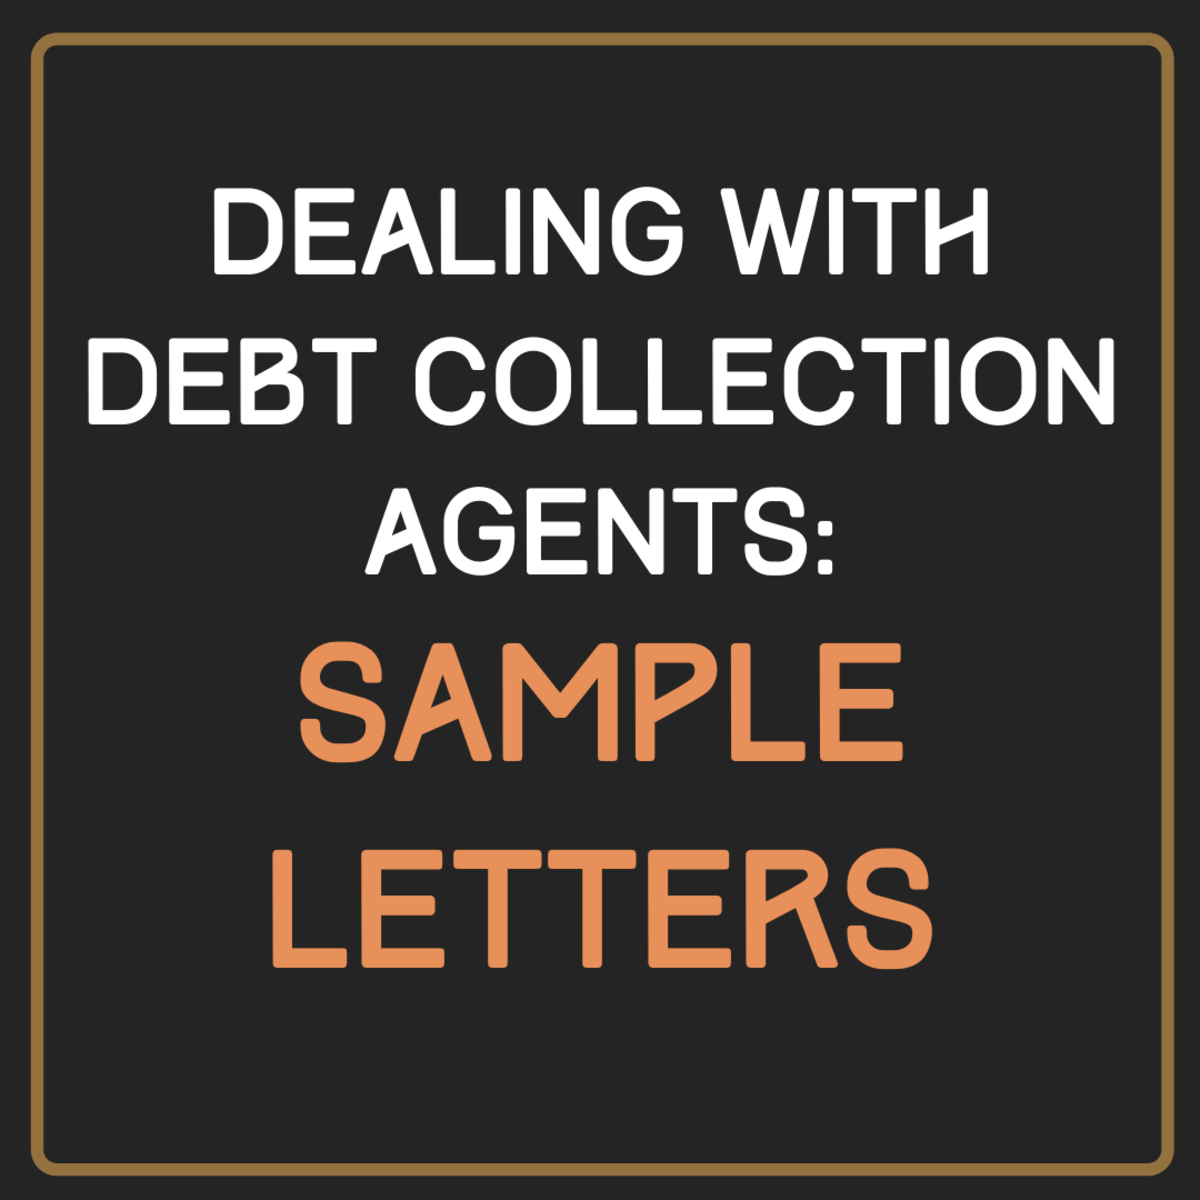 Sample Letters to Send to Debt Collection Agents in Canada